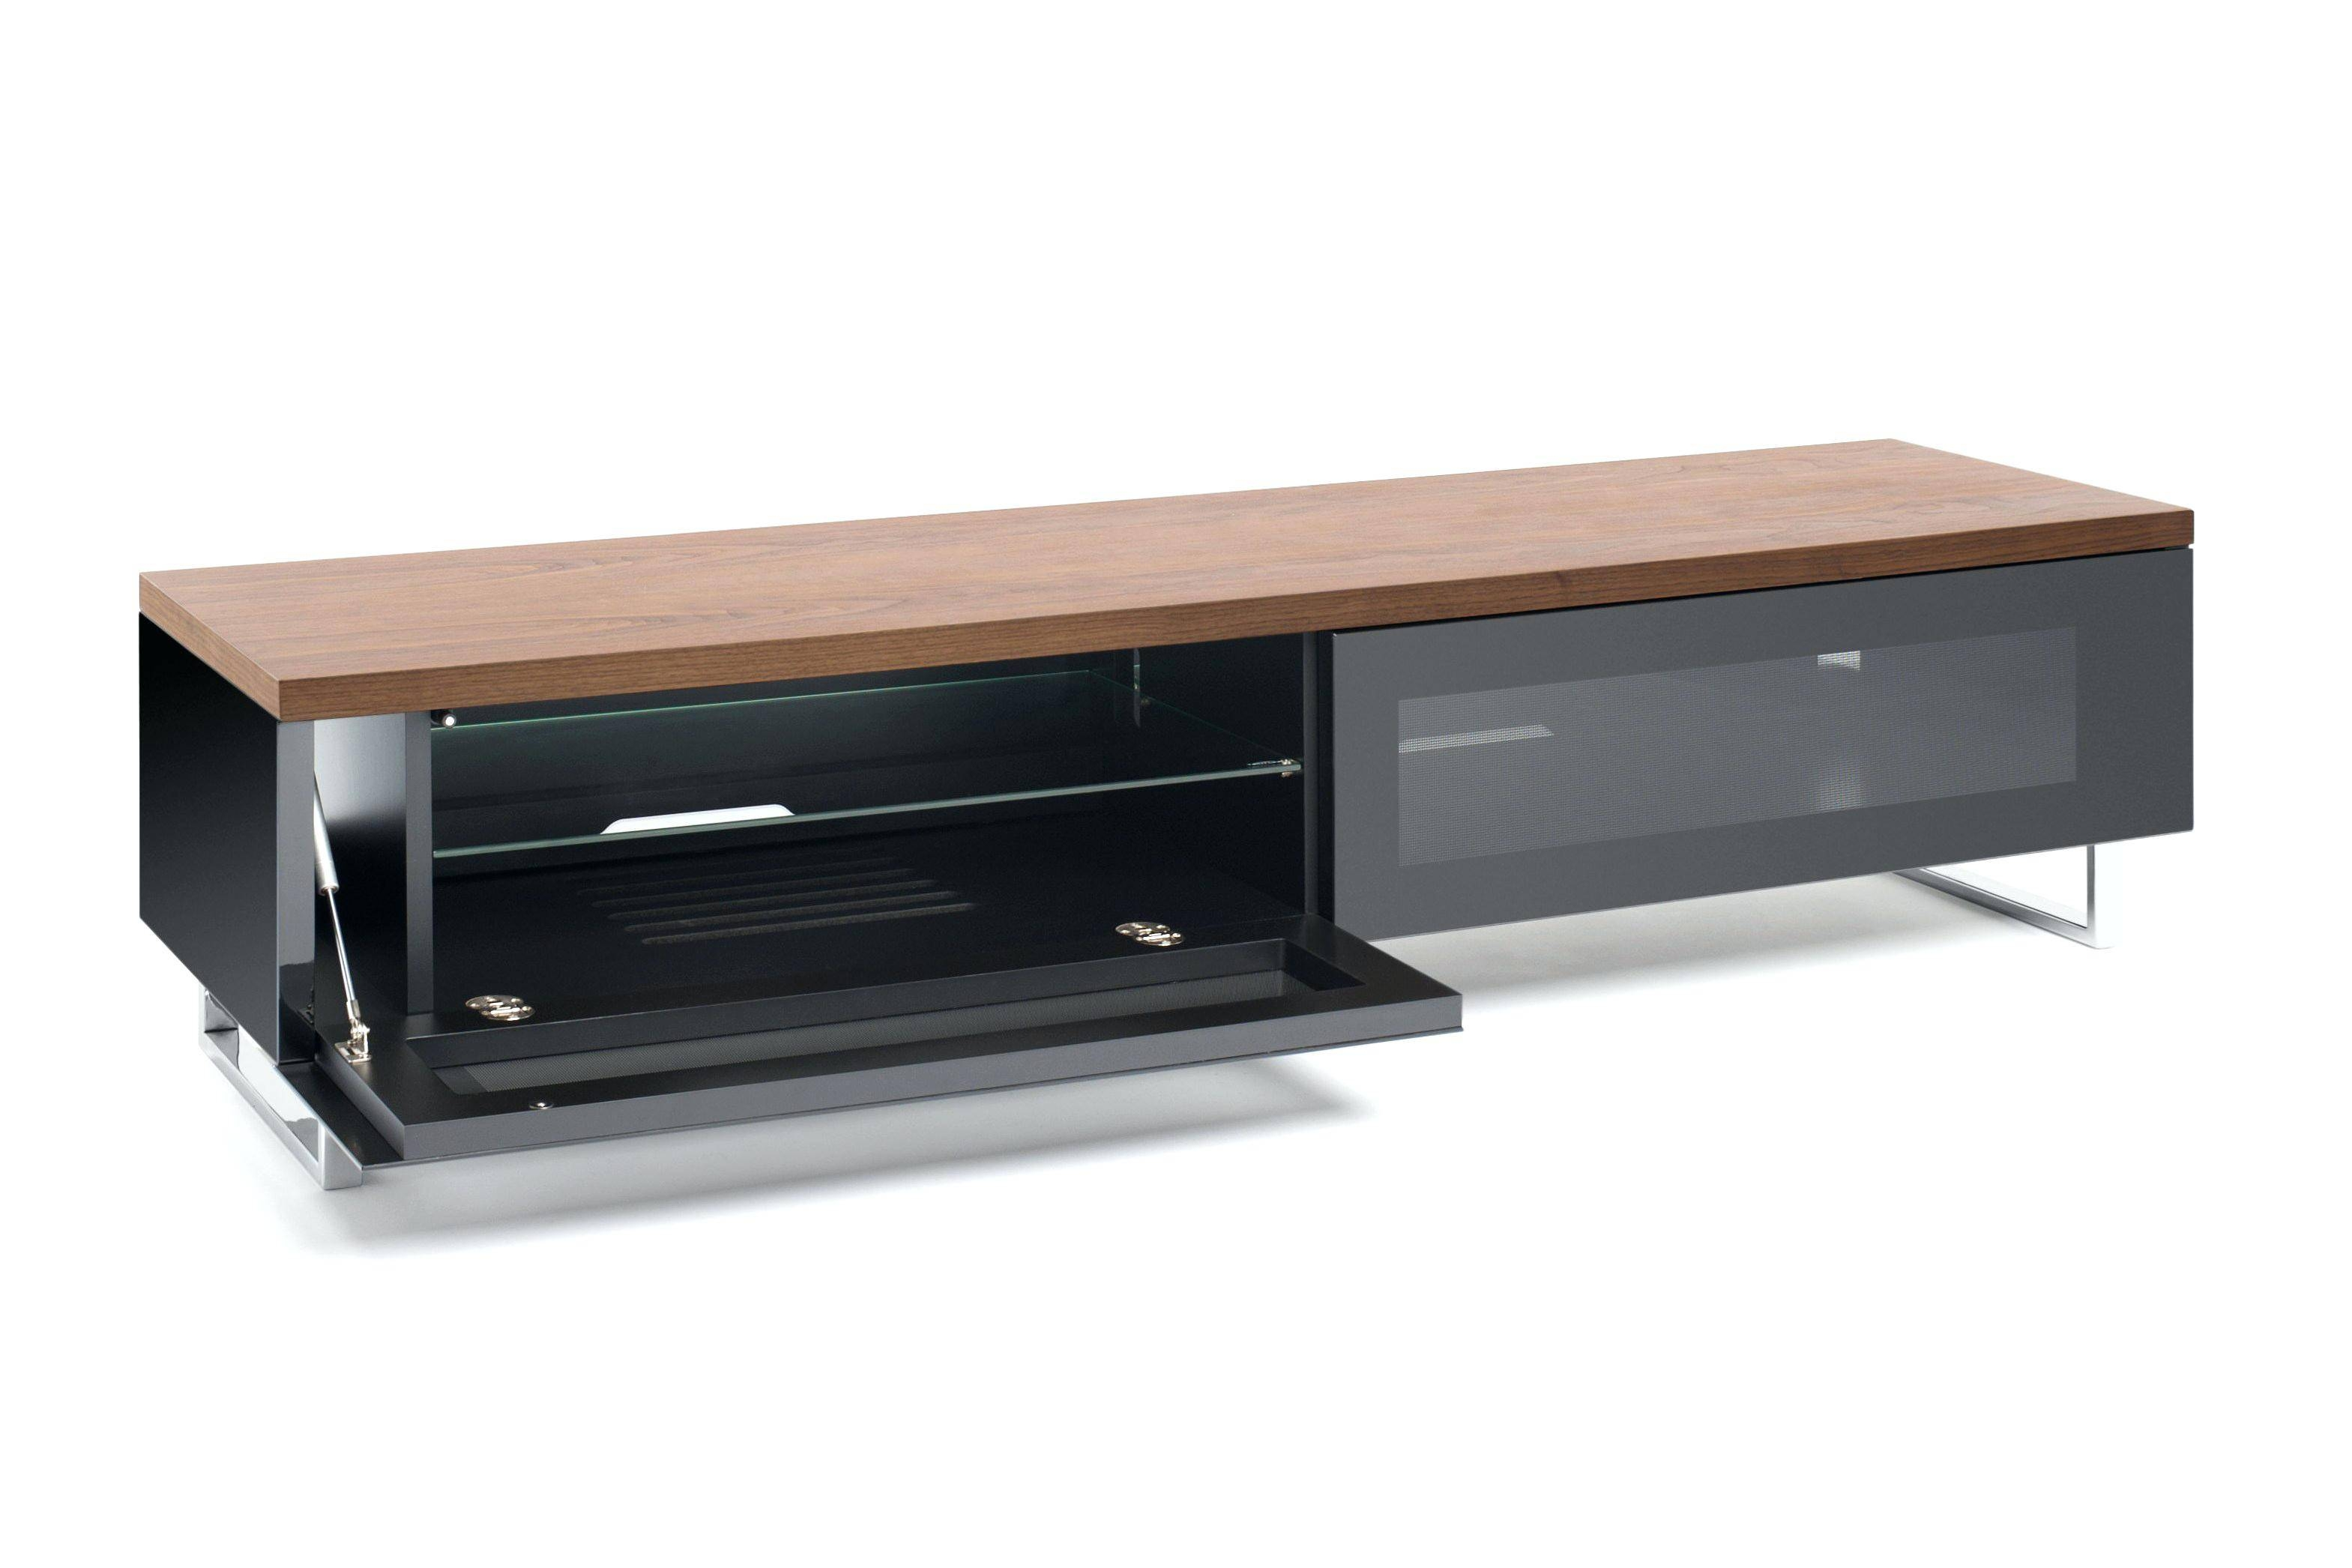 Tv Stand: Compact Low Tv Stand Modern For Living Room (View 5 of 15)